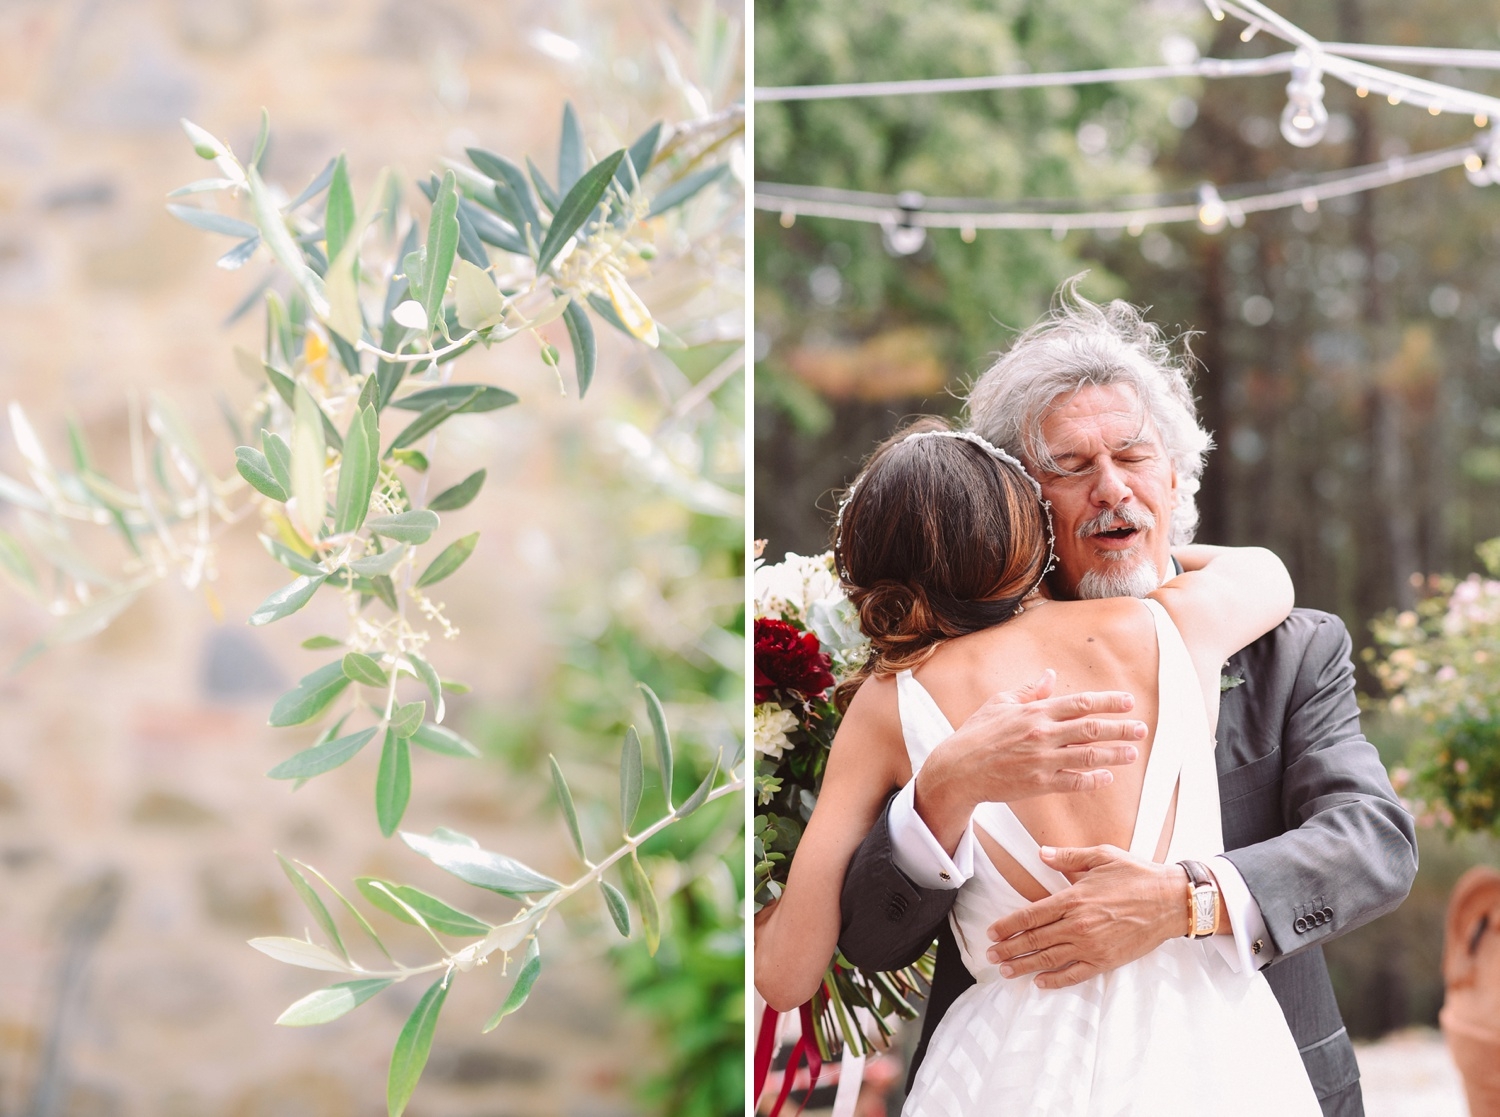 landvphotography-wedding-photographer-tuscany_1851.jpg